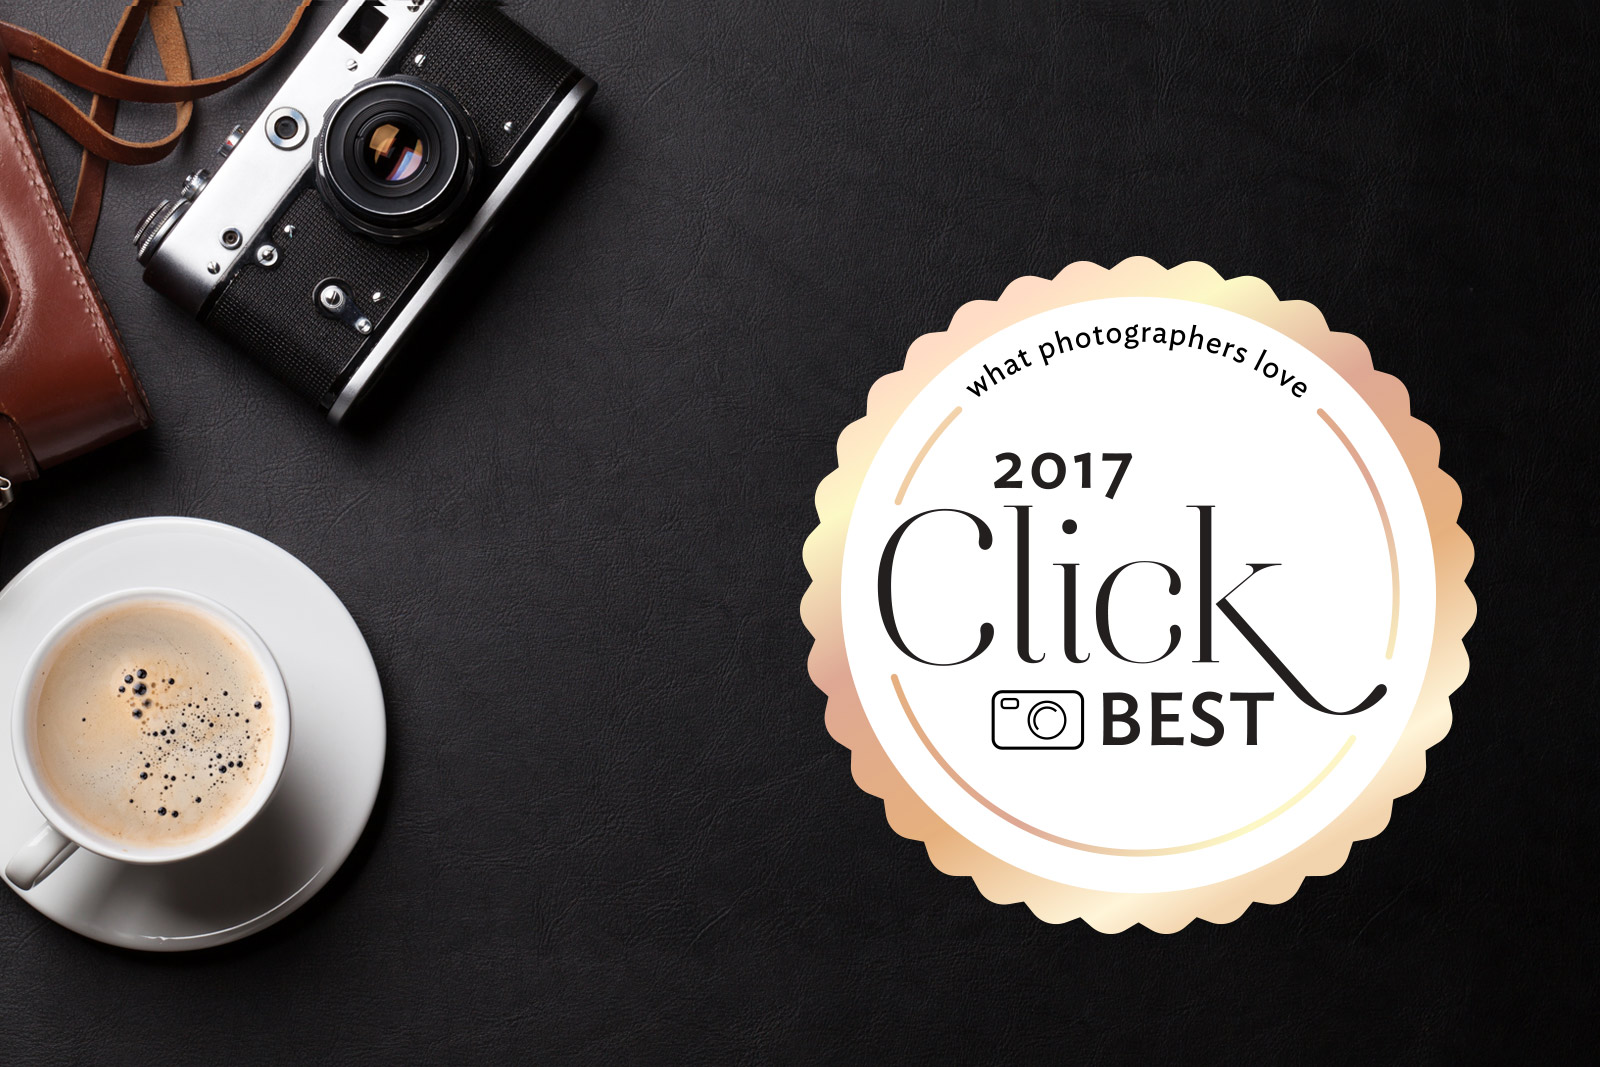 The 100 best photography products of 2017